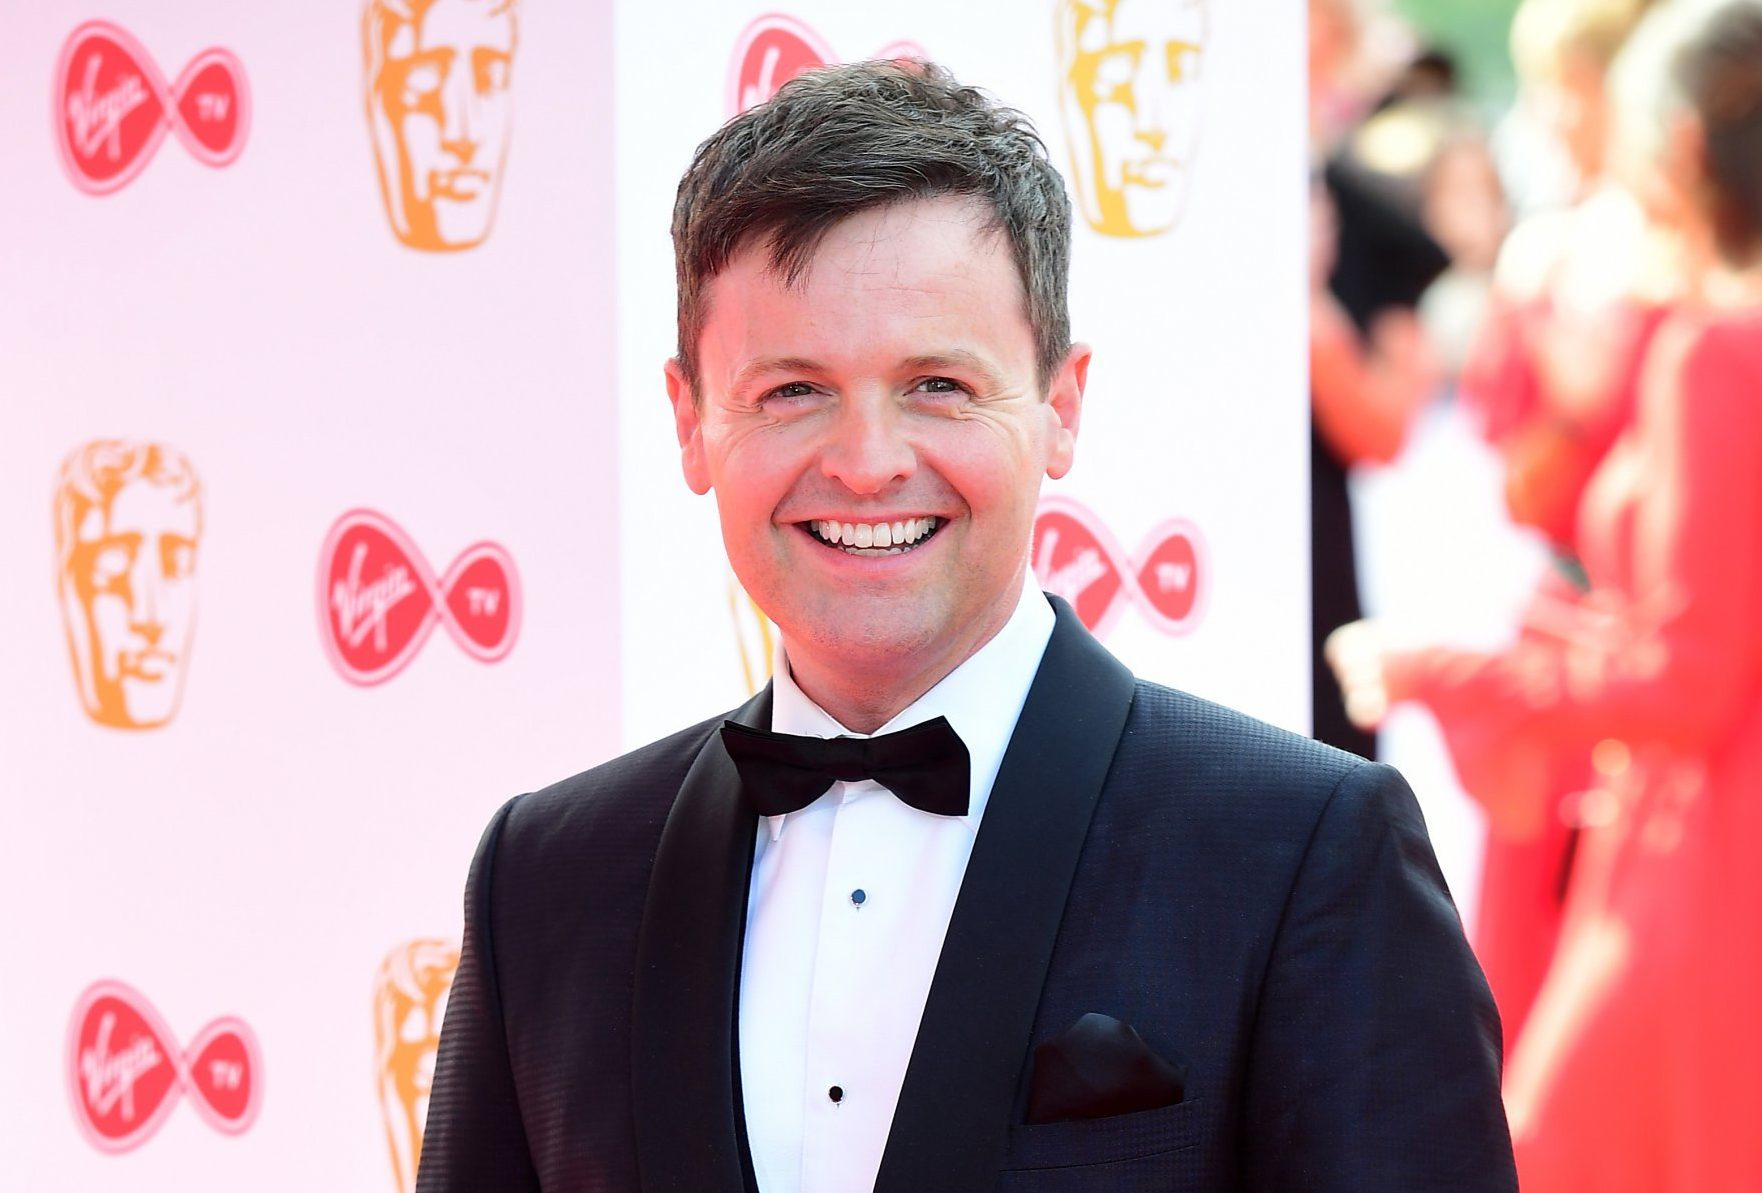 Declan Donnelly banking '£2.5 million salary' for hosting I'm a Celebrity with Holly Willoughby